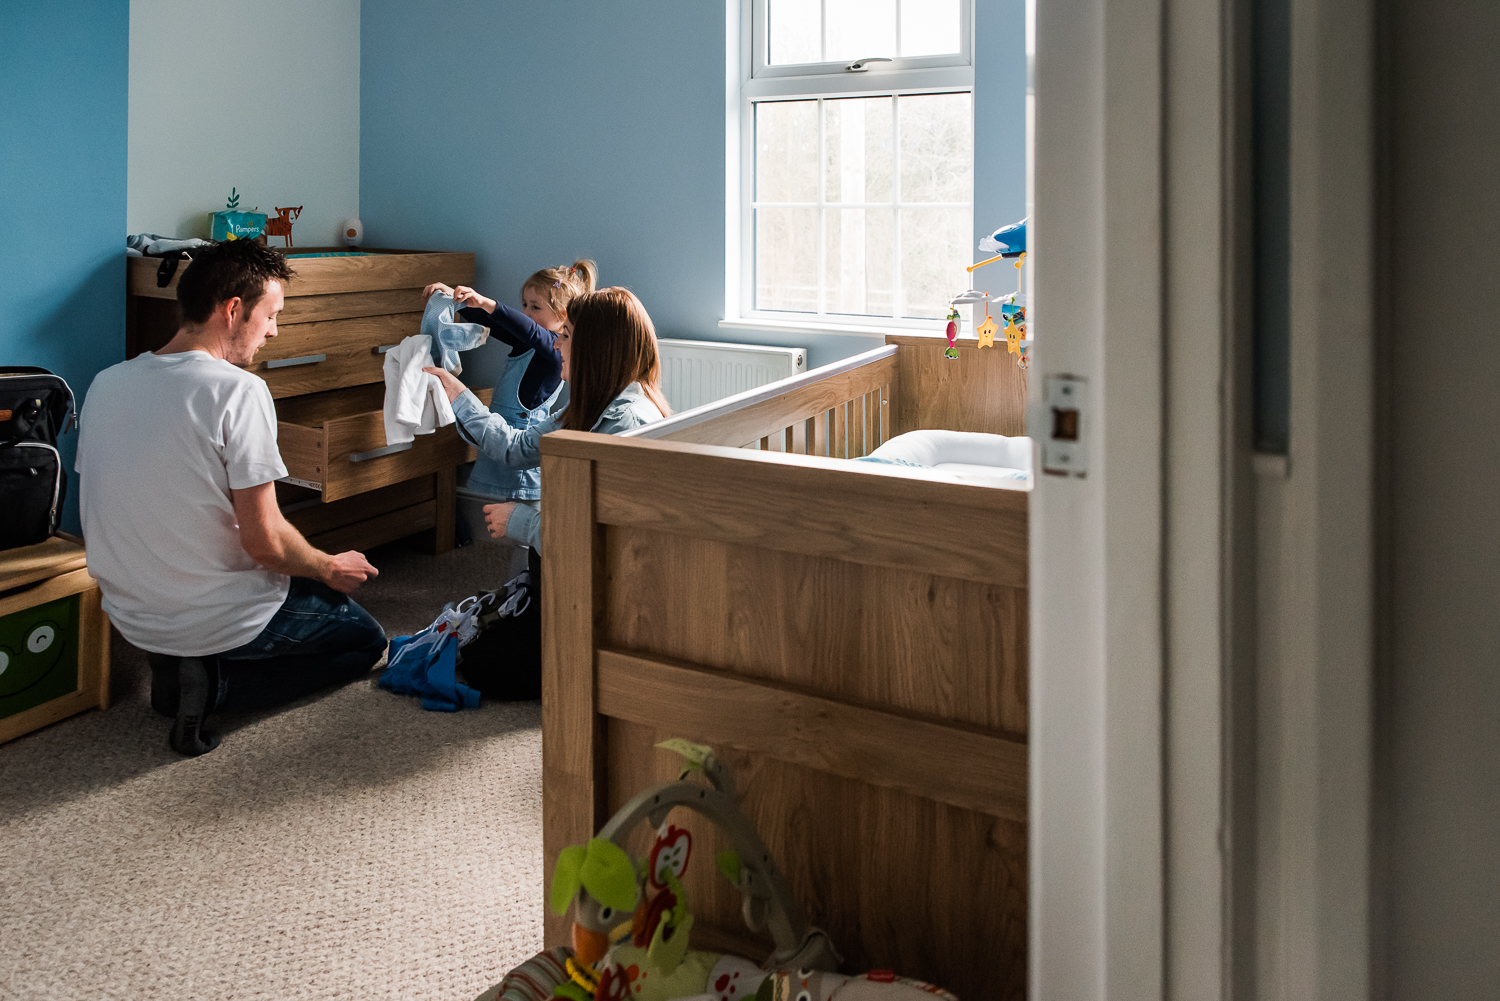 Family in the baby nursery